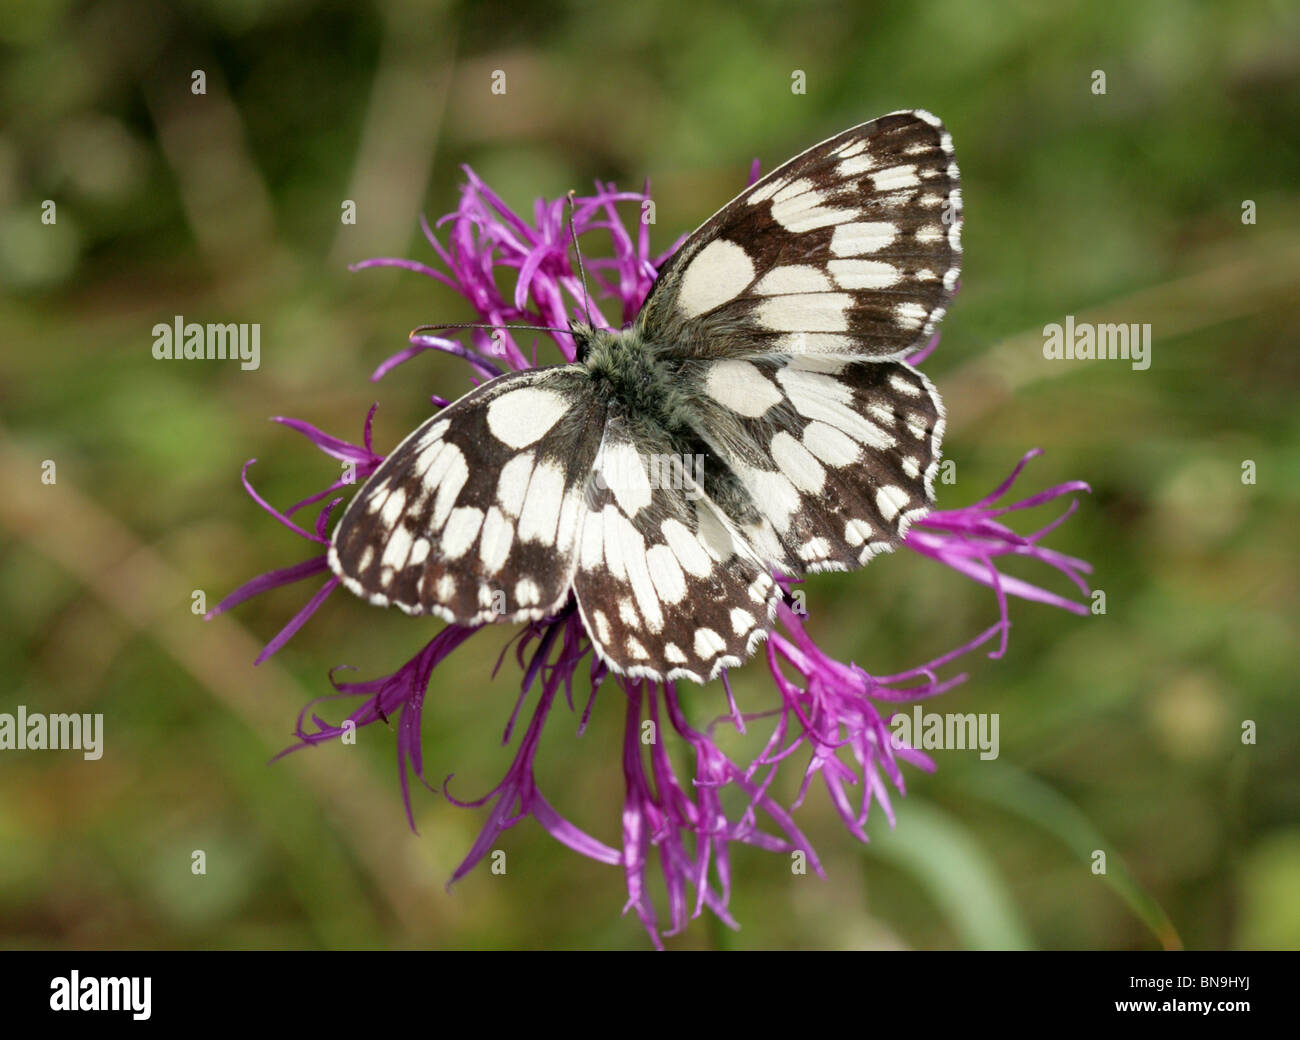 Marbled White Butterfly, Melanargia galathea, Nymphalidae, on a Greater Knapweed Flower Stock Photo